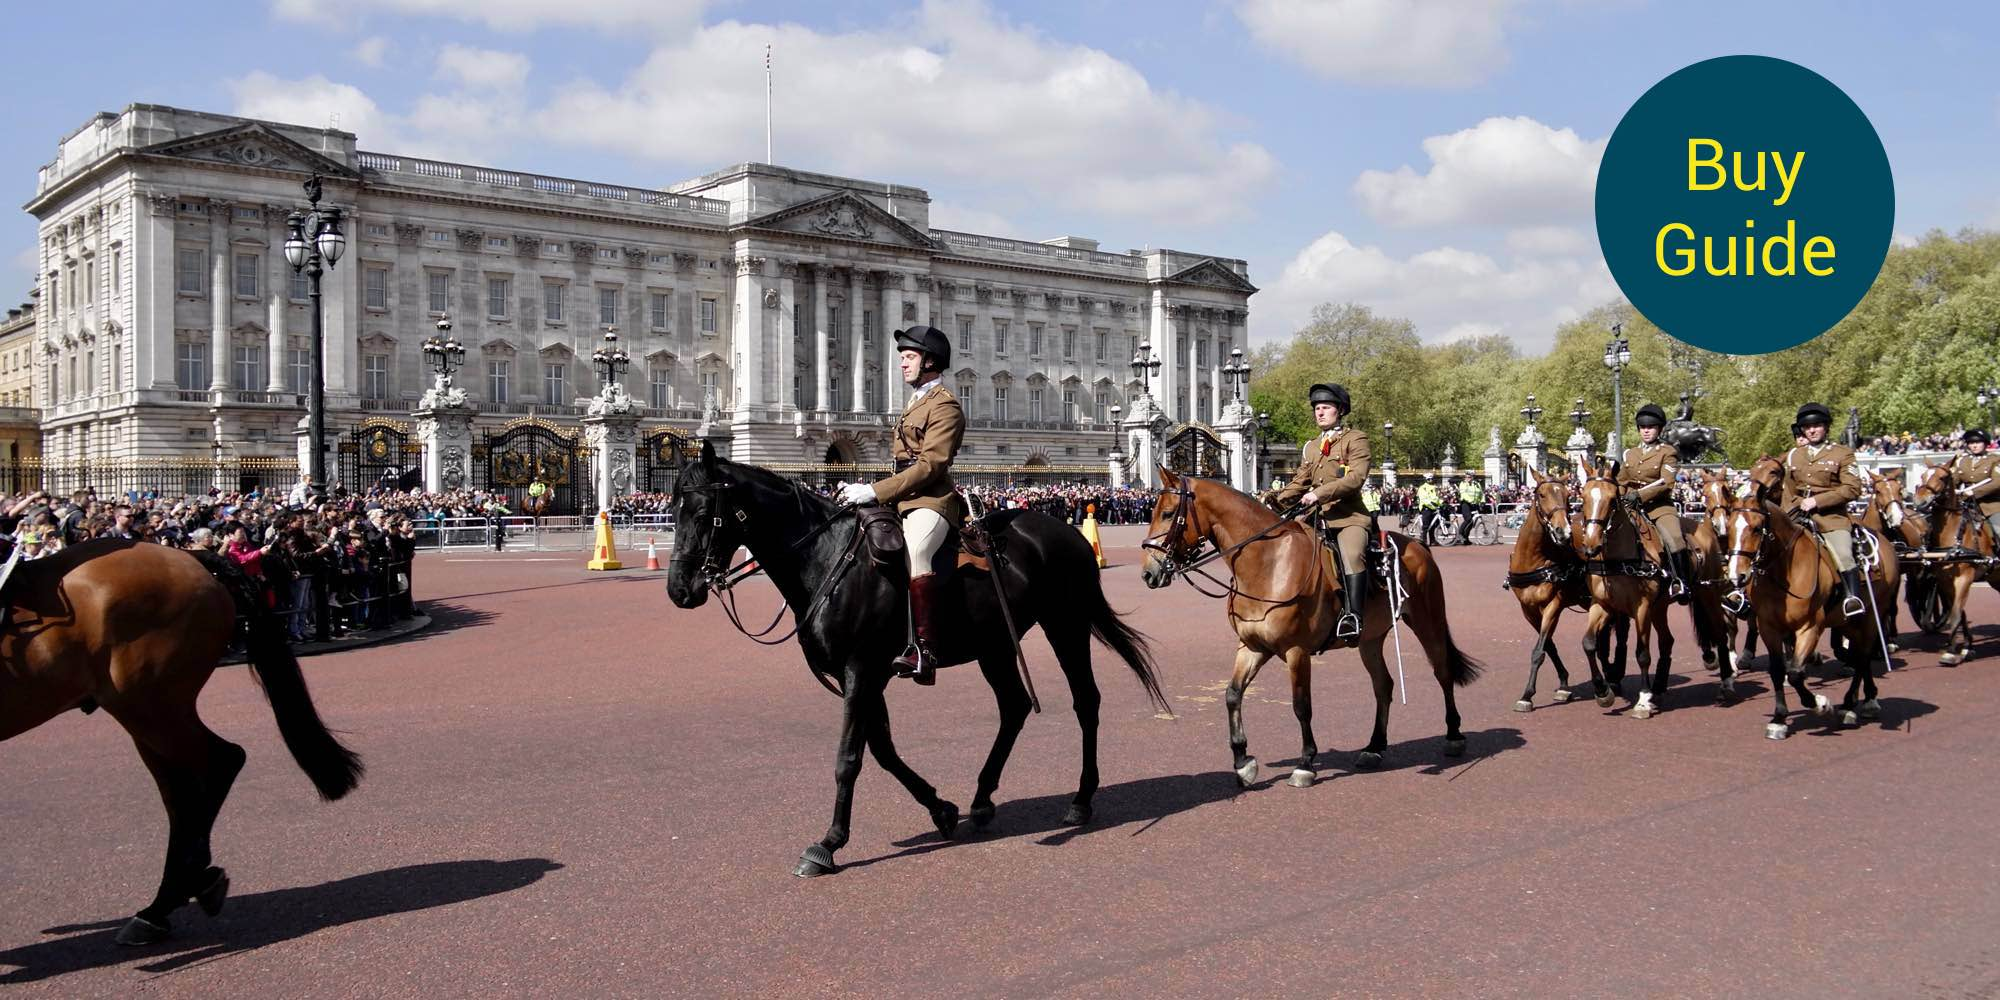 What is the route for Changing of the Guard in London